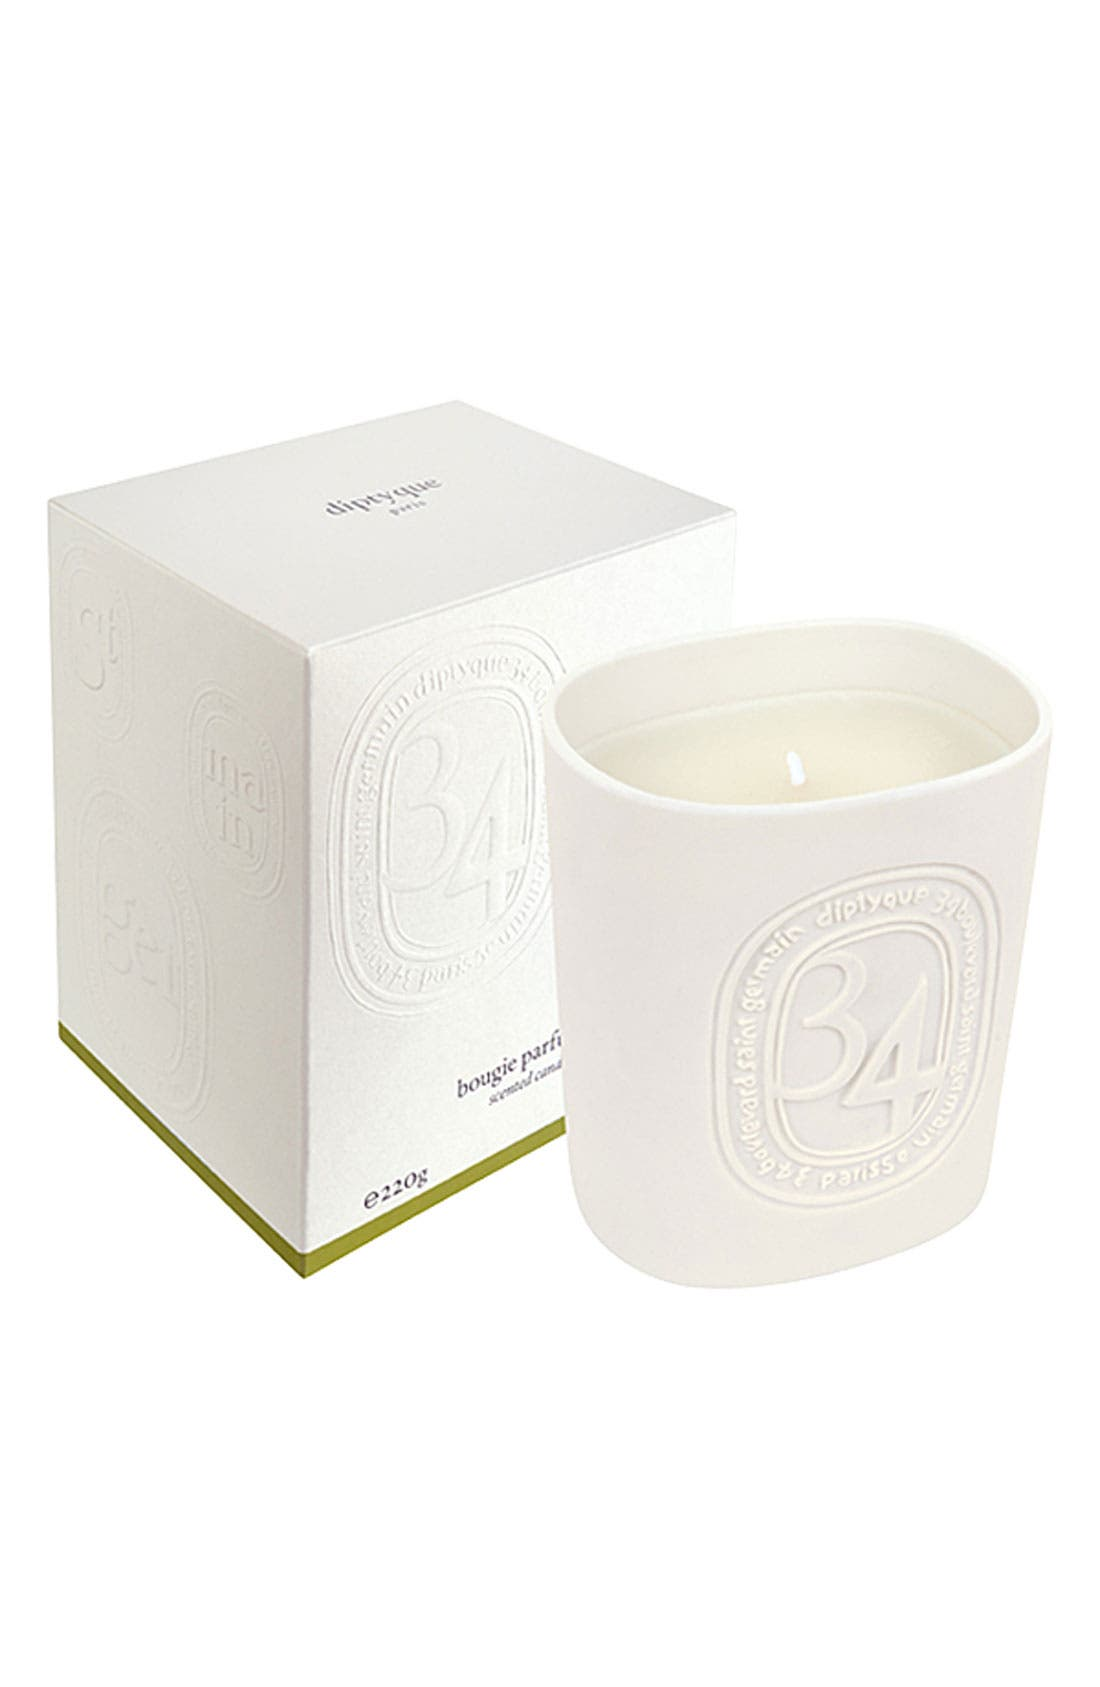 Main Image - diptyque 34 Scented Candle